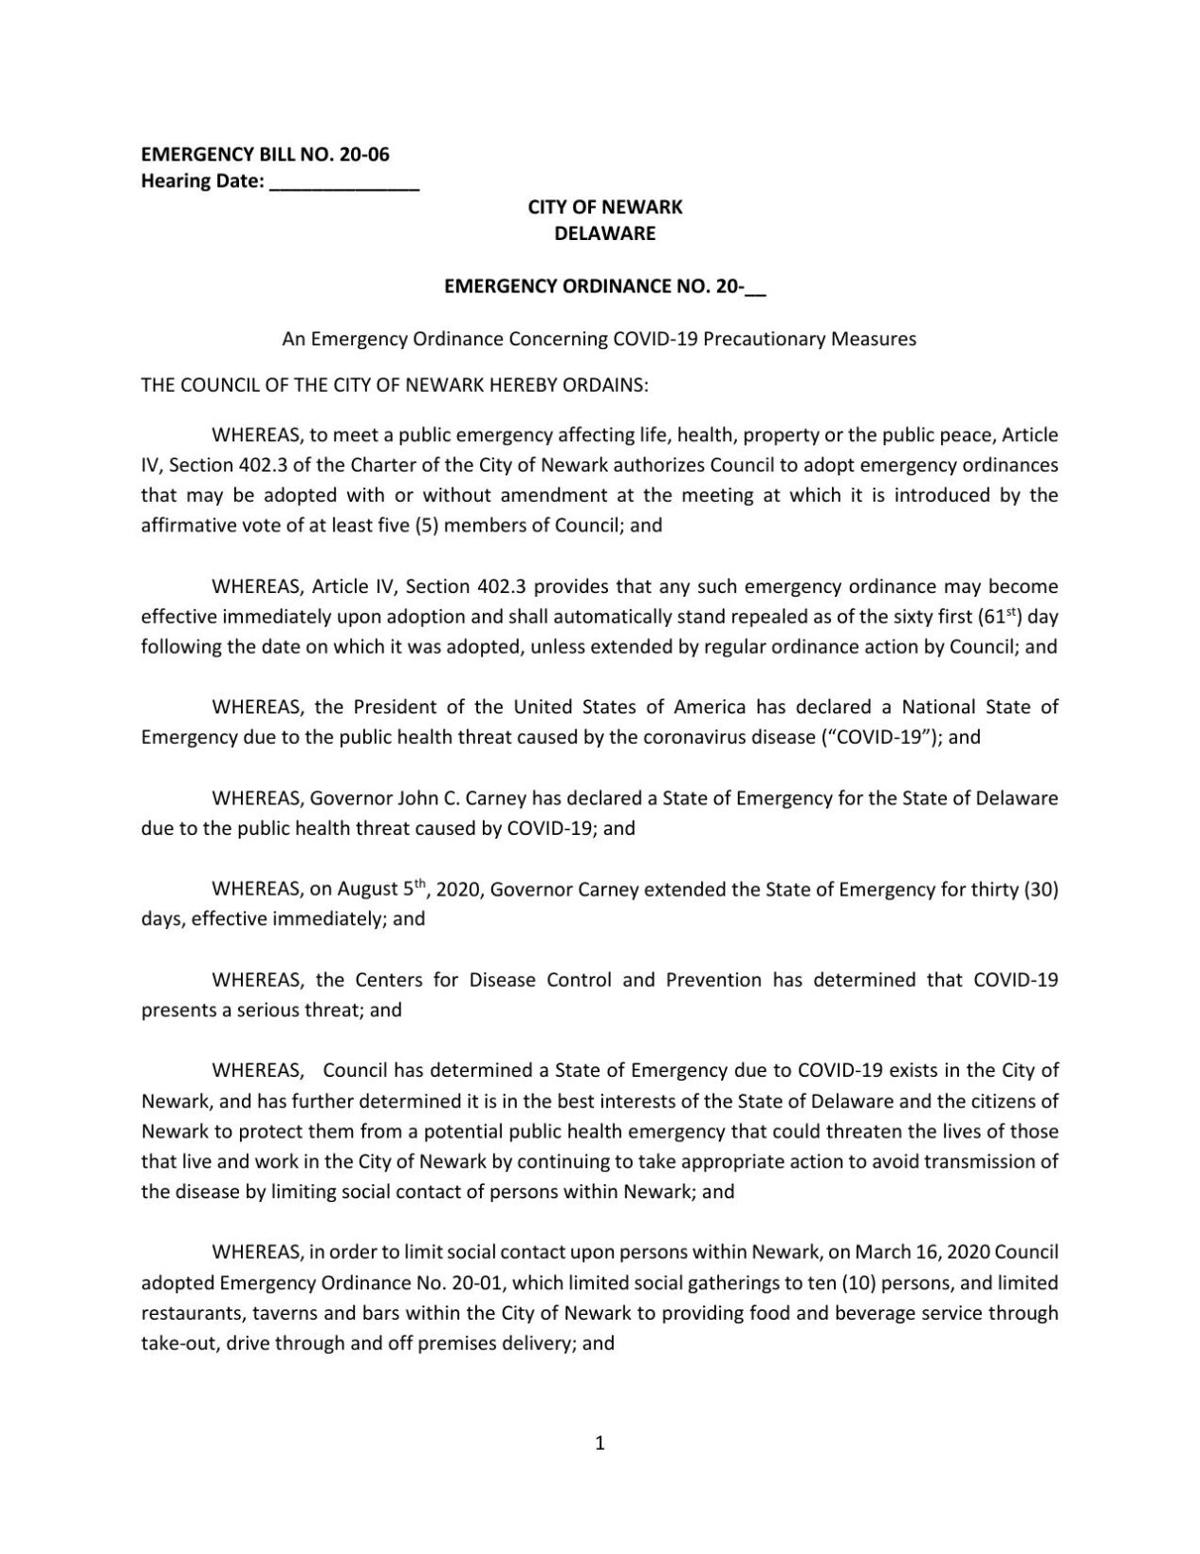 Newark emergency ordinance 082320